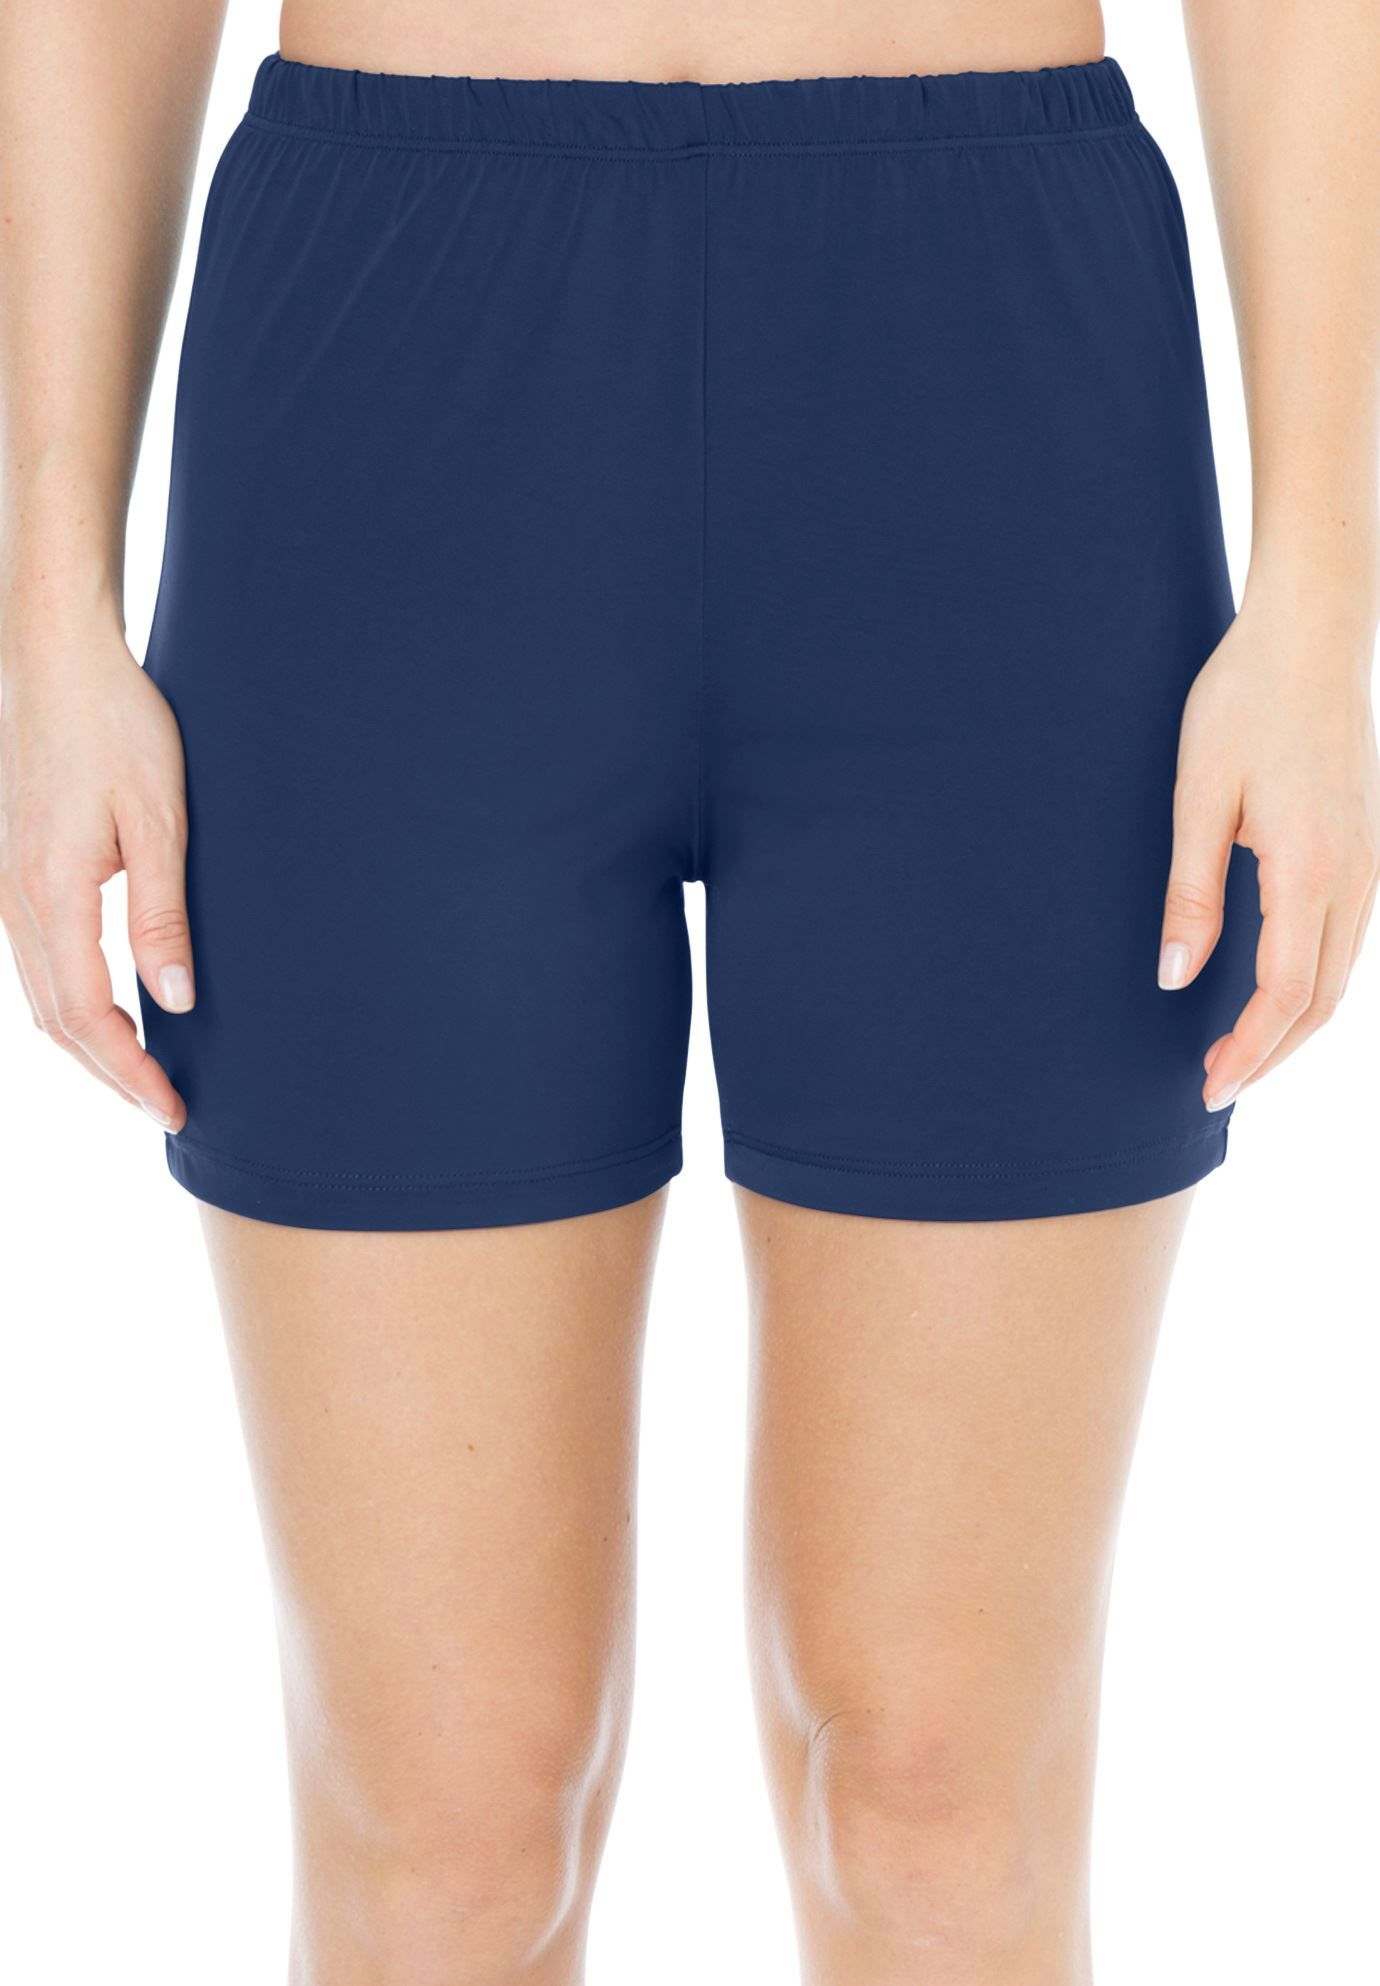 595861f415763 Swimsuit, bike shorts bottoms by Swim 365® | Plus Size Hip & Thigh Trimmers